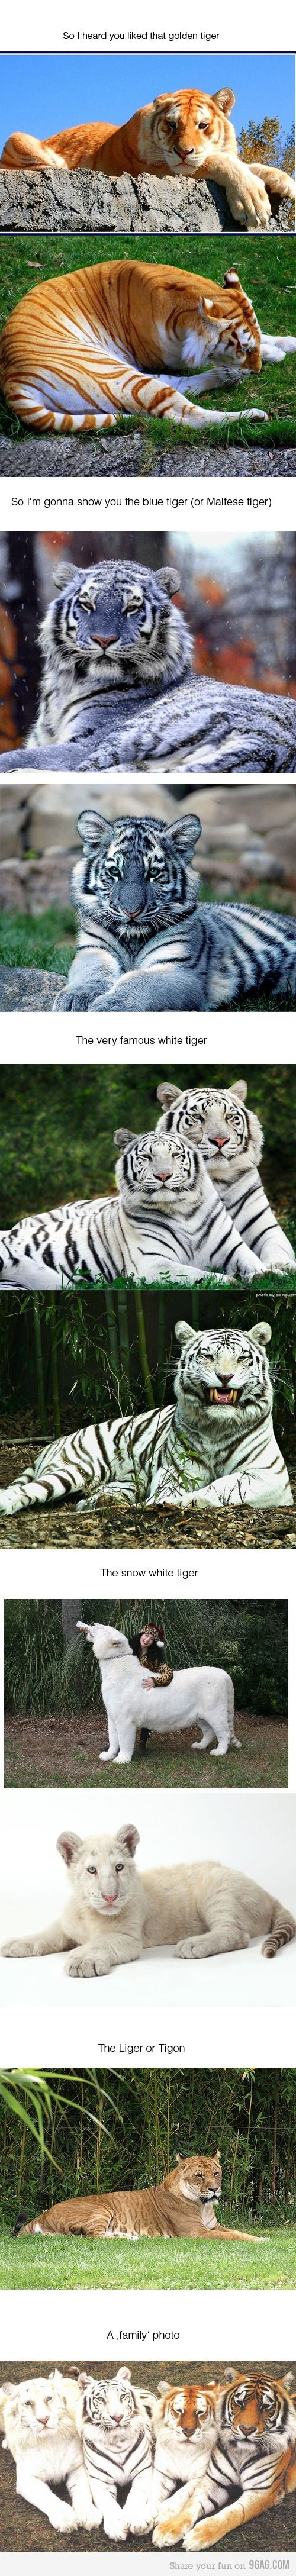 They are so beautiful! I've never seen the blue tiger!